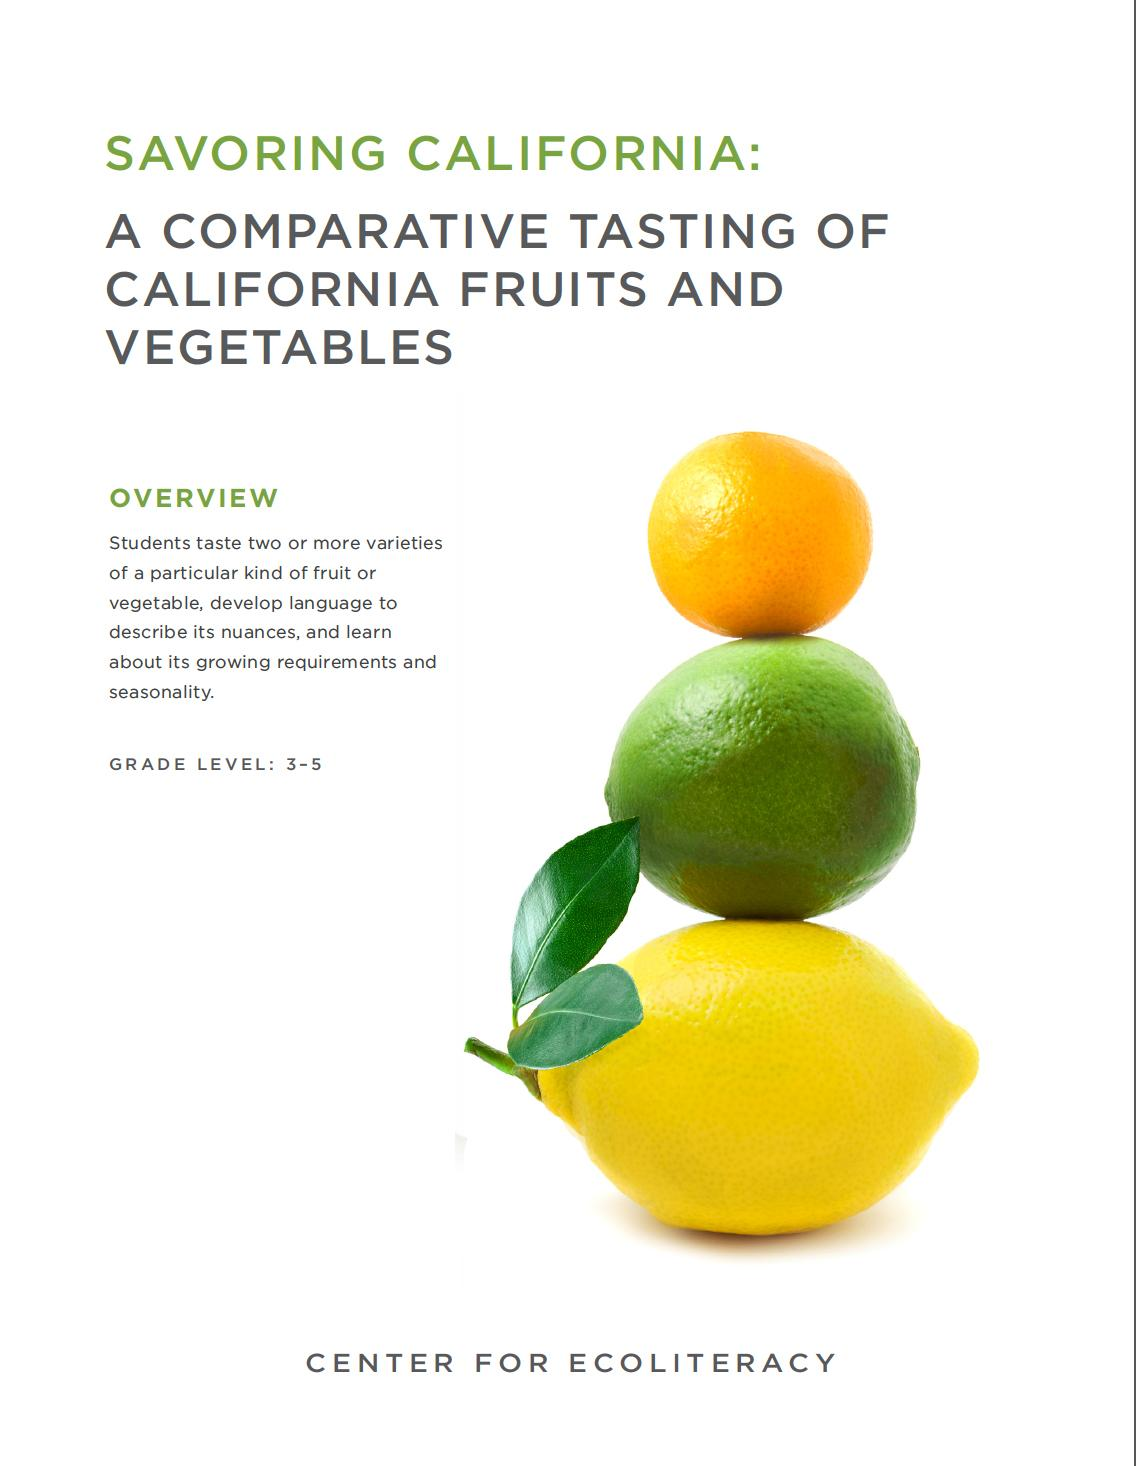 Savoring California: A Comparative Tasting of California Fruits and Vegetables cover